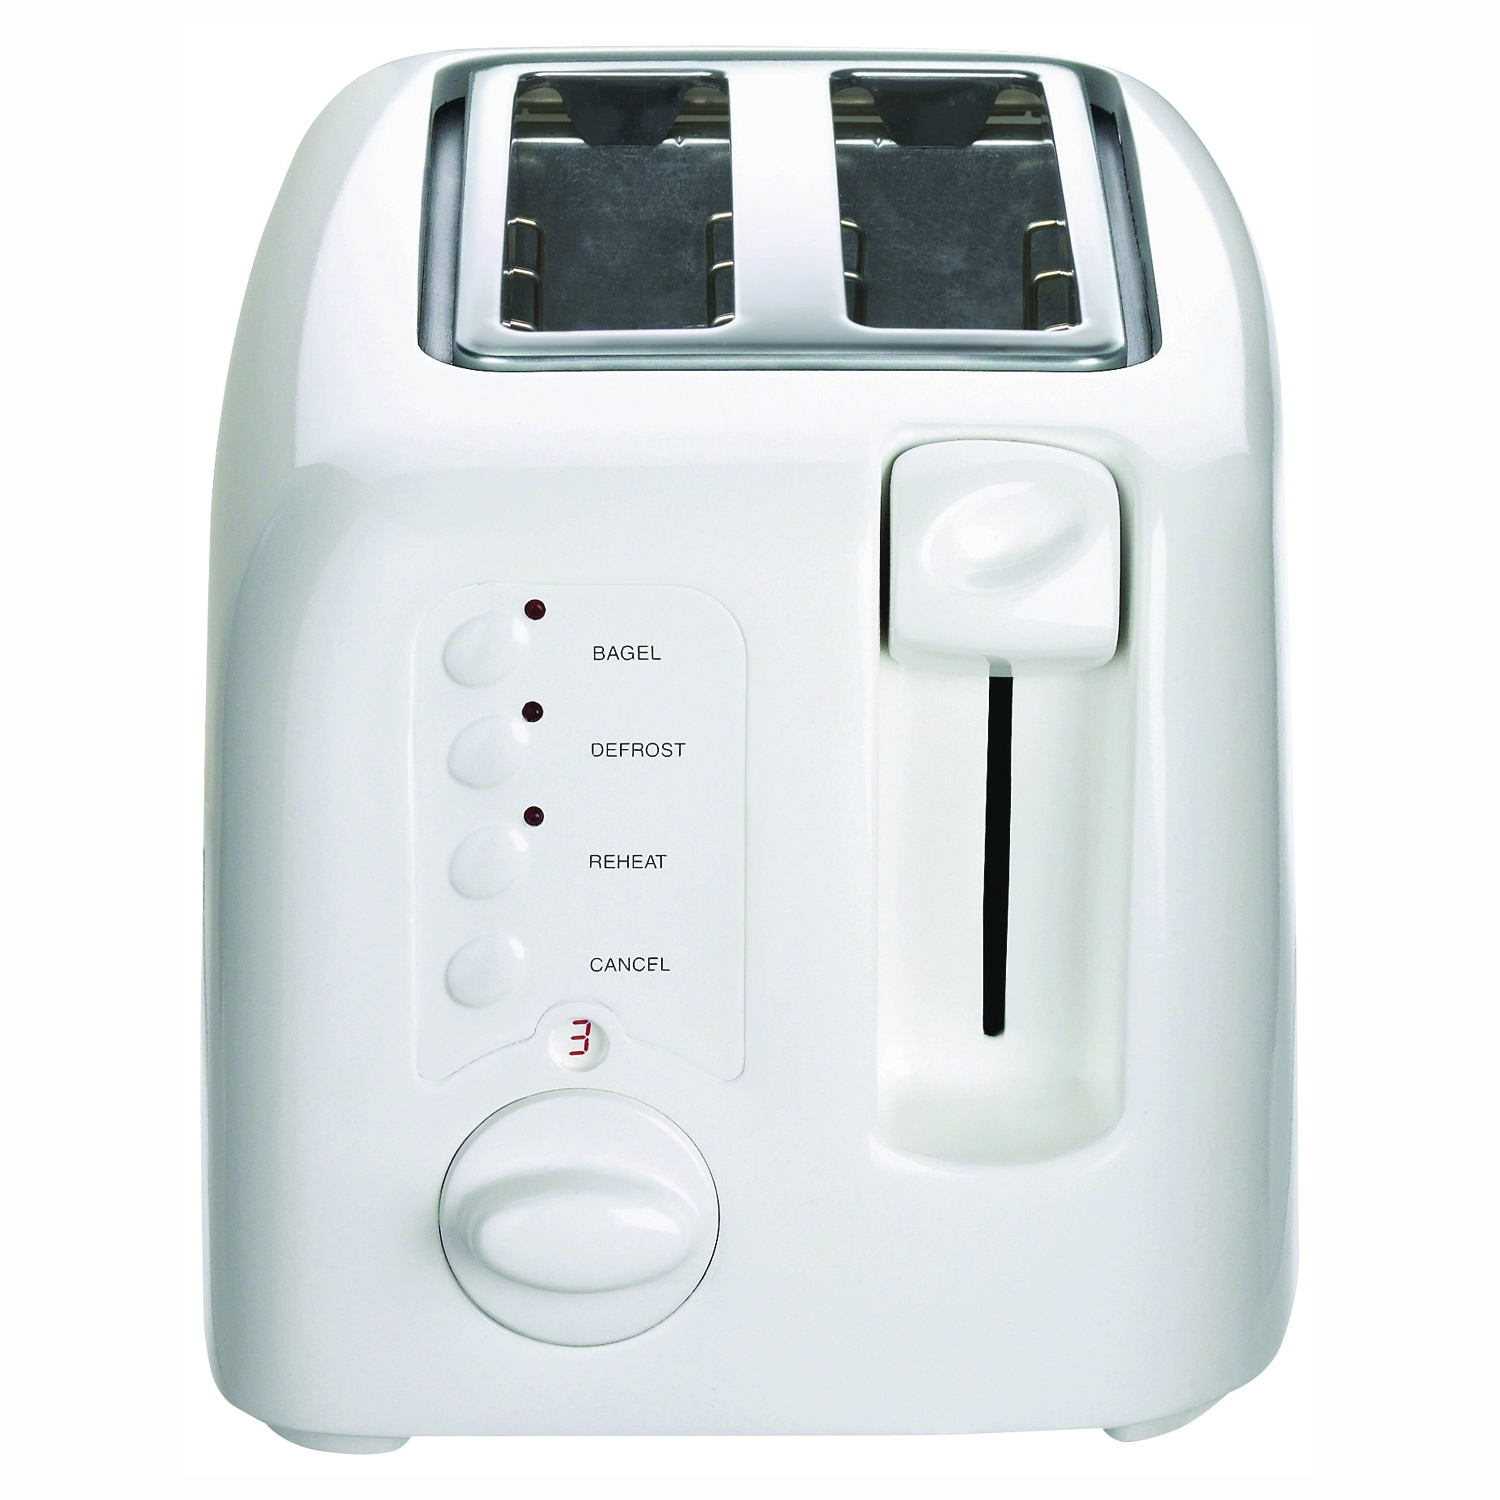 Picture of Cuisinart CPT-122 Electric Toaster, 900 W, 2 Slice/Hr, Manual Control, Plastic, White